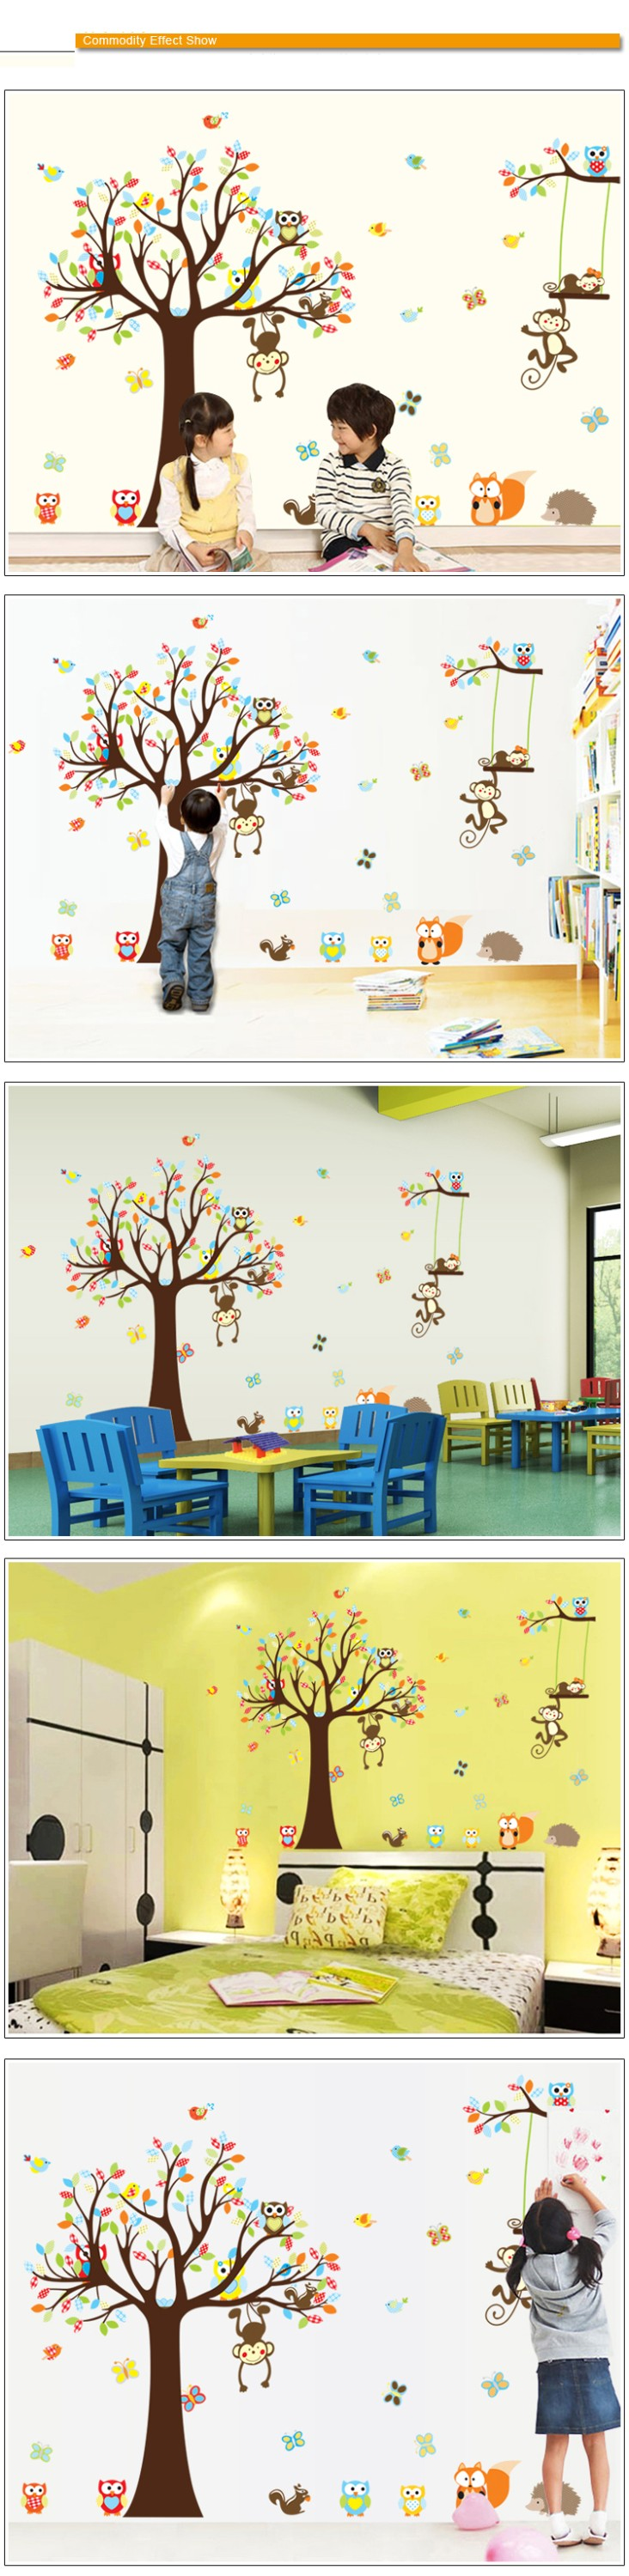 Jungle Zoo Animal Girafee, Elephant, Lion, Zebra and Monkey having party on Tree Monkey Wall Decal Owl Zoo Wall Decal